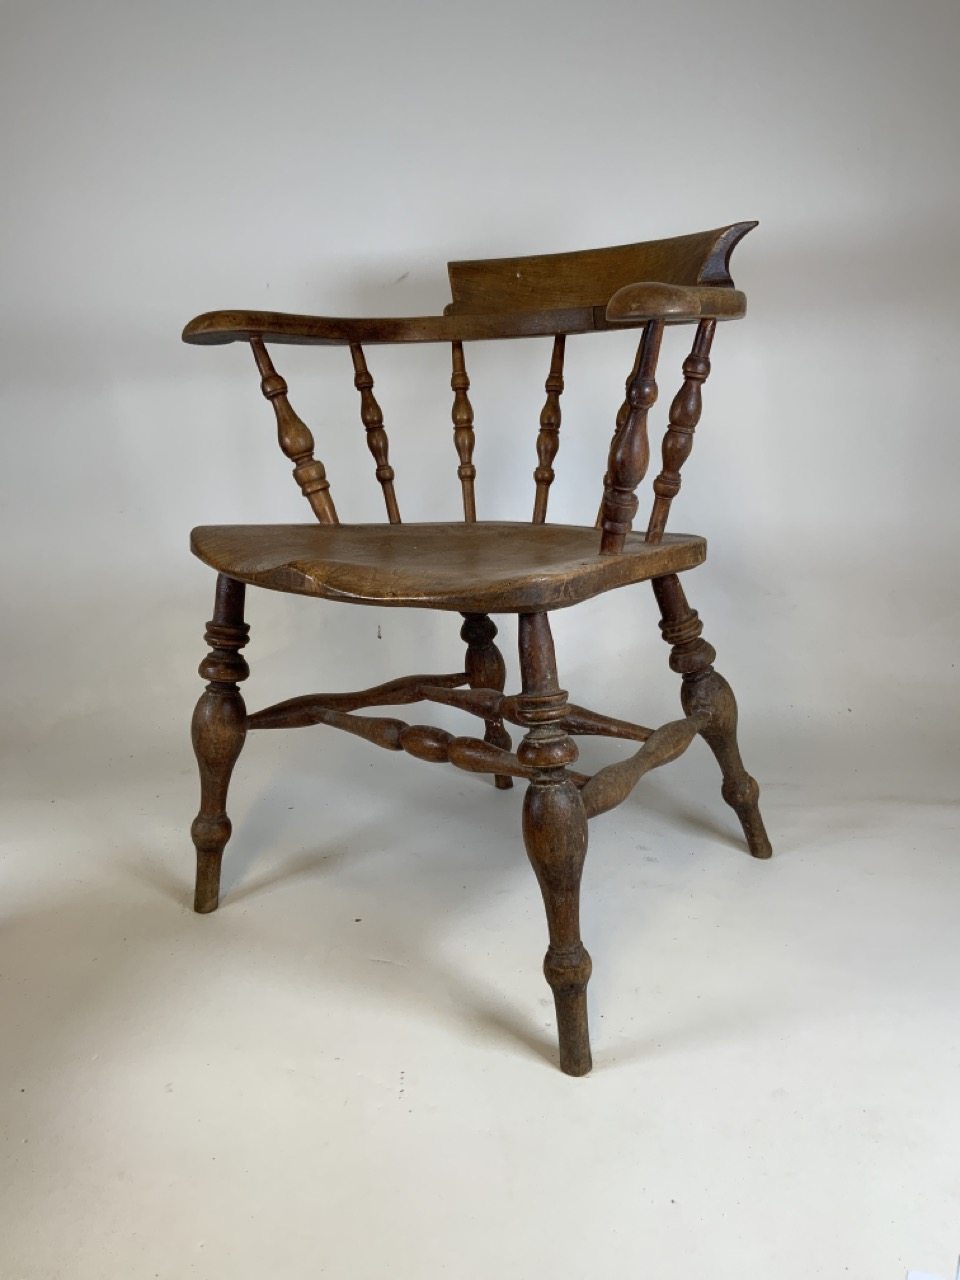 A Victorian smokers bow arm chair with curved top rail and turned spindles with saddle shaped seat